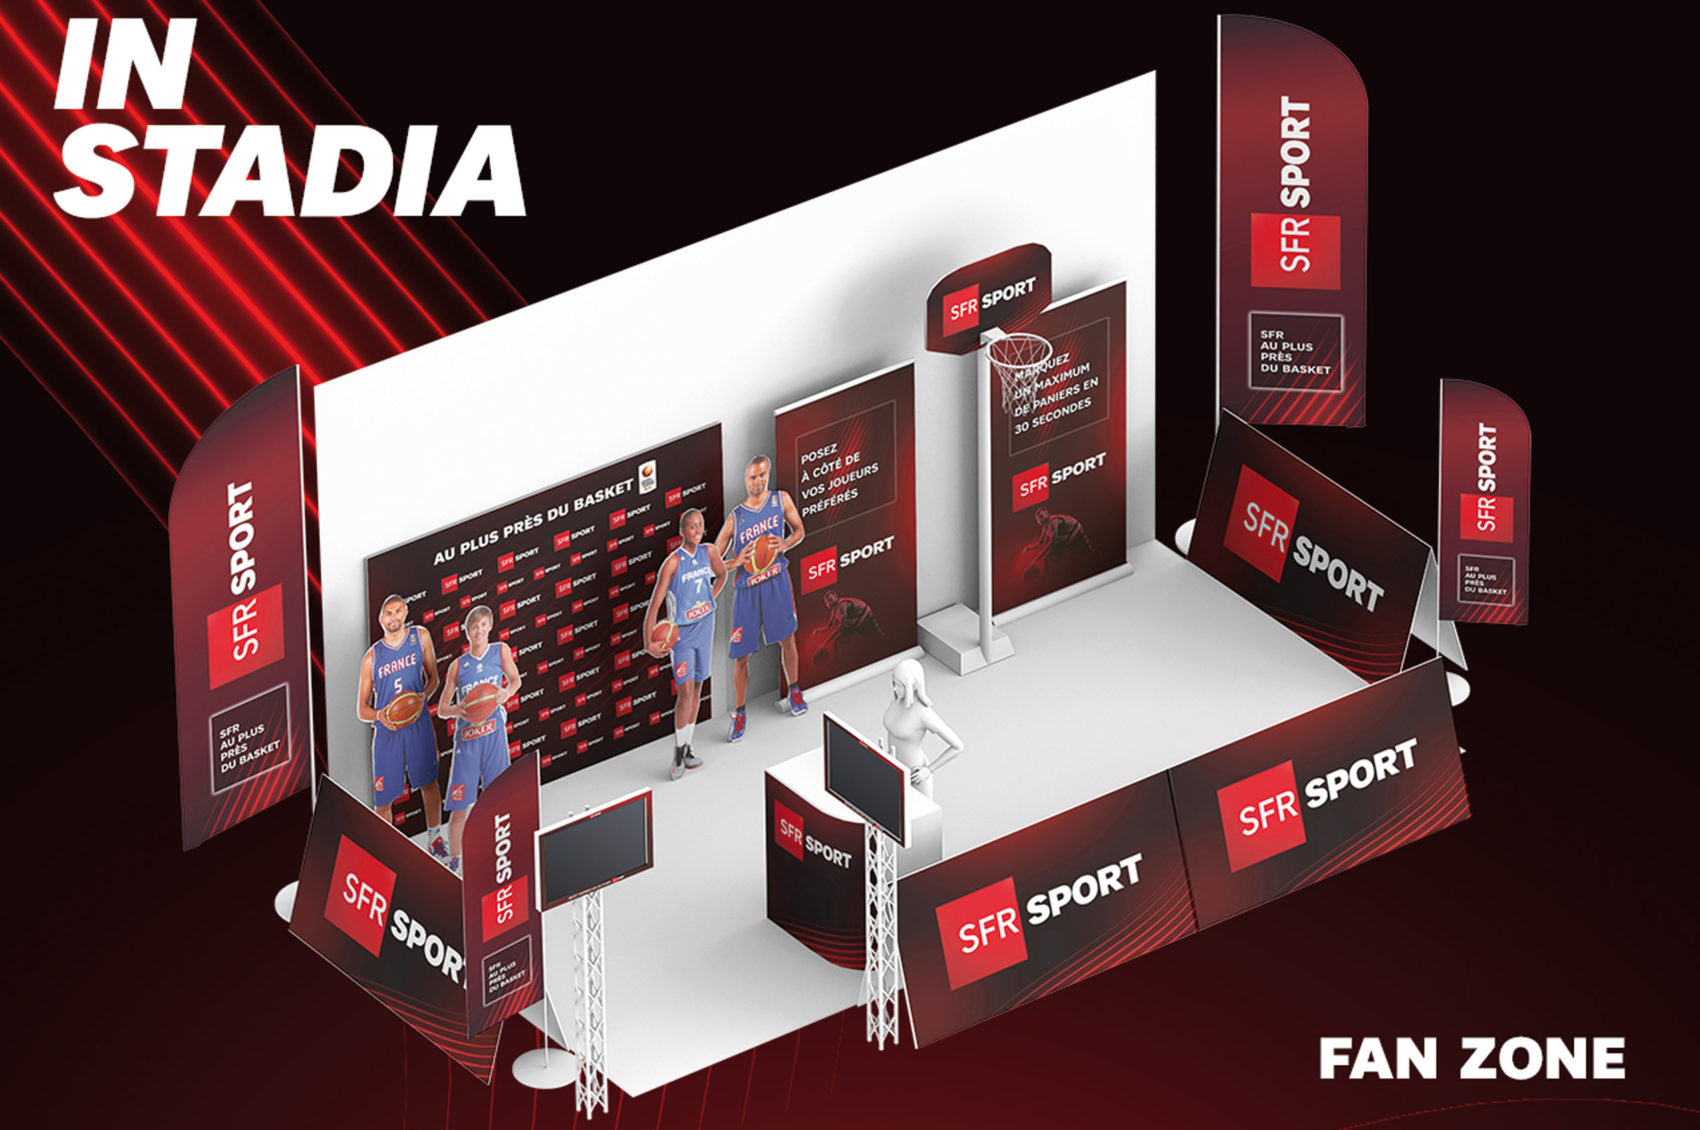 Visuel_SFR_Sport_in_stadia_fan_zone